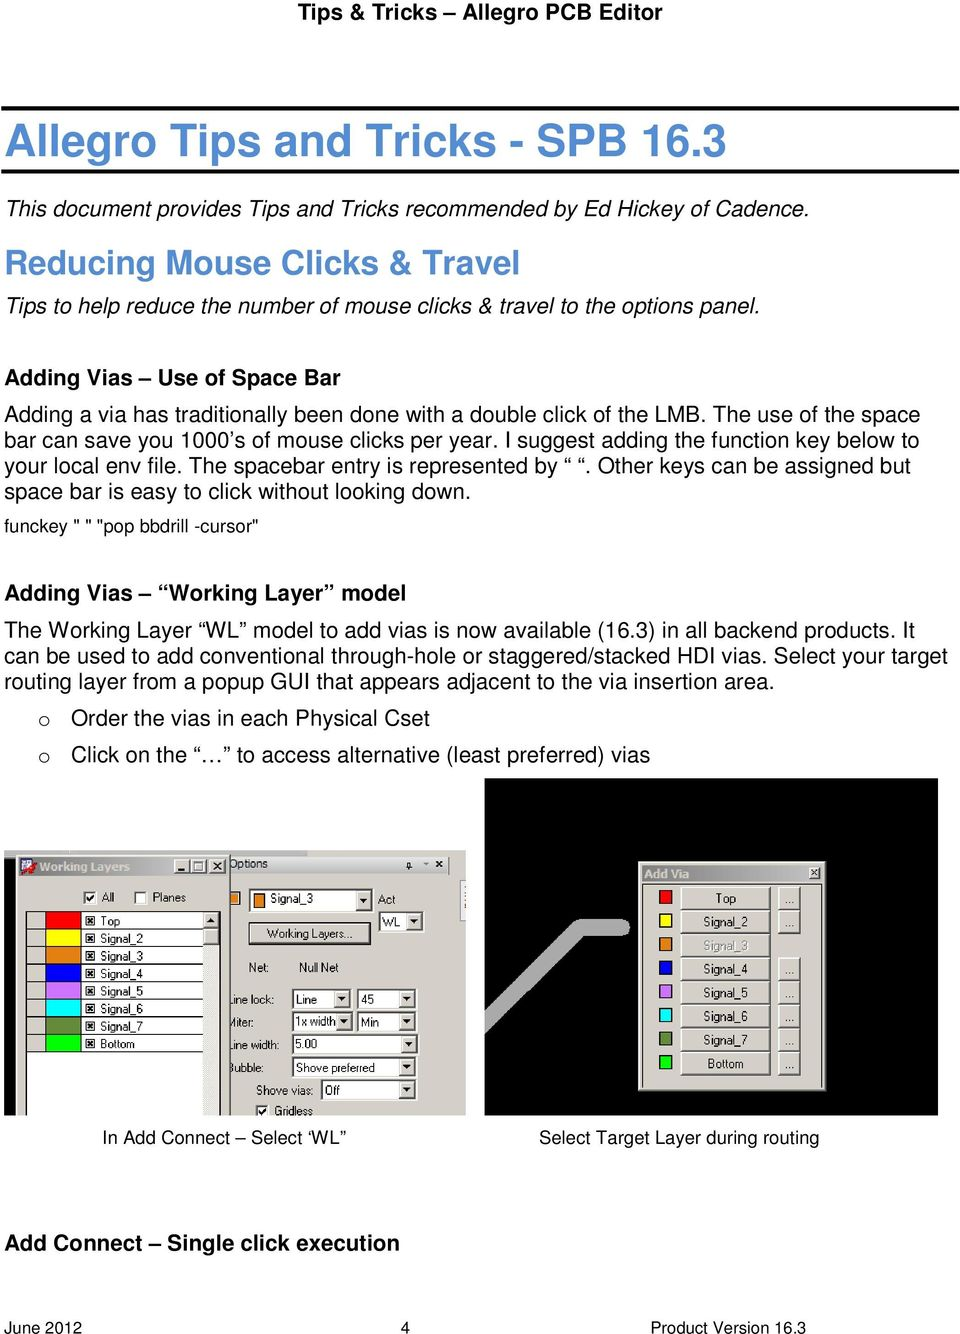 Tips & Tricks  Allegro PCB Editor  April Ed Hickey Product Engineer